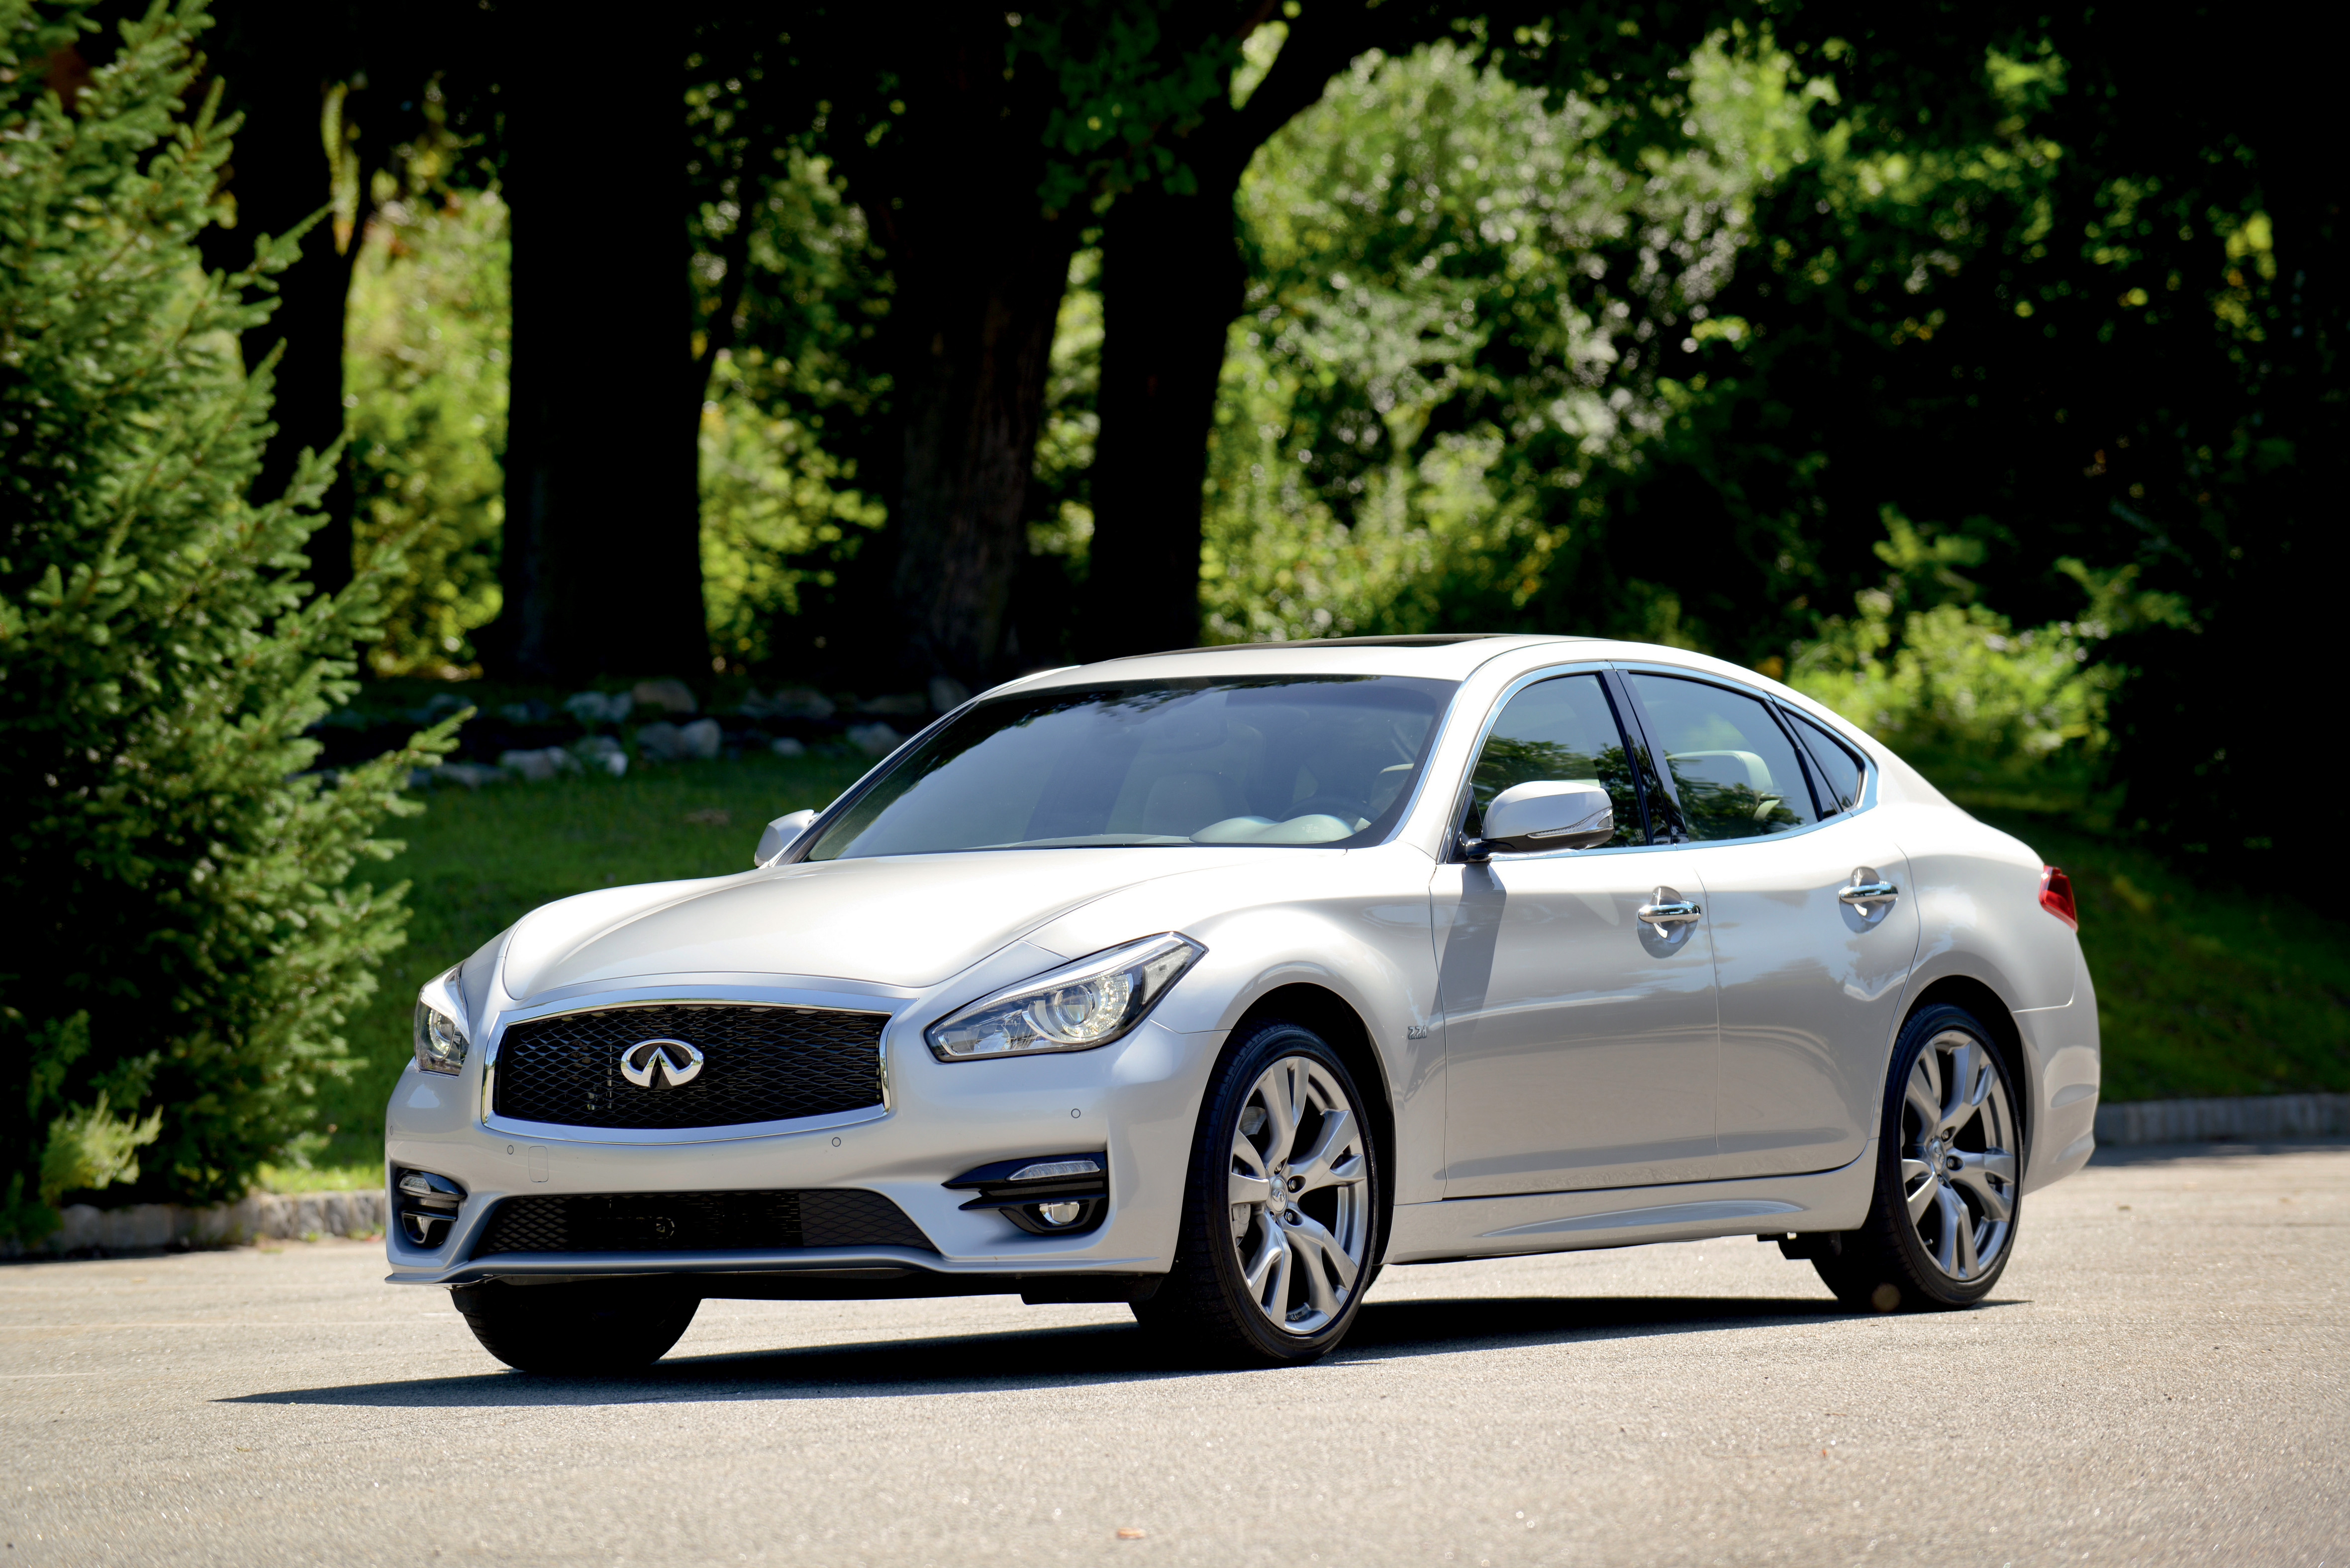 concept the power to littlegate publishing cars infinity captivate infiniti